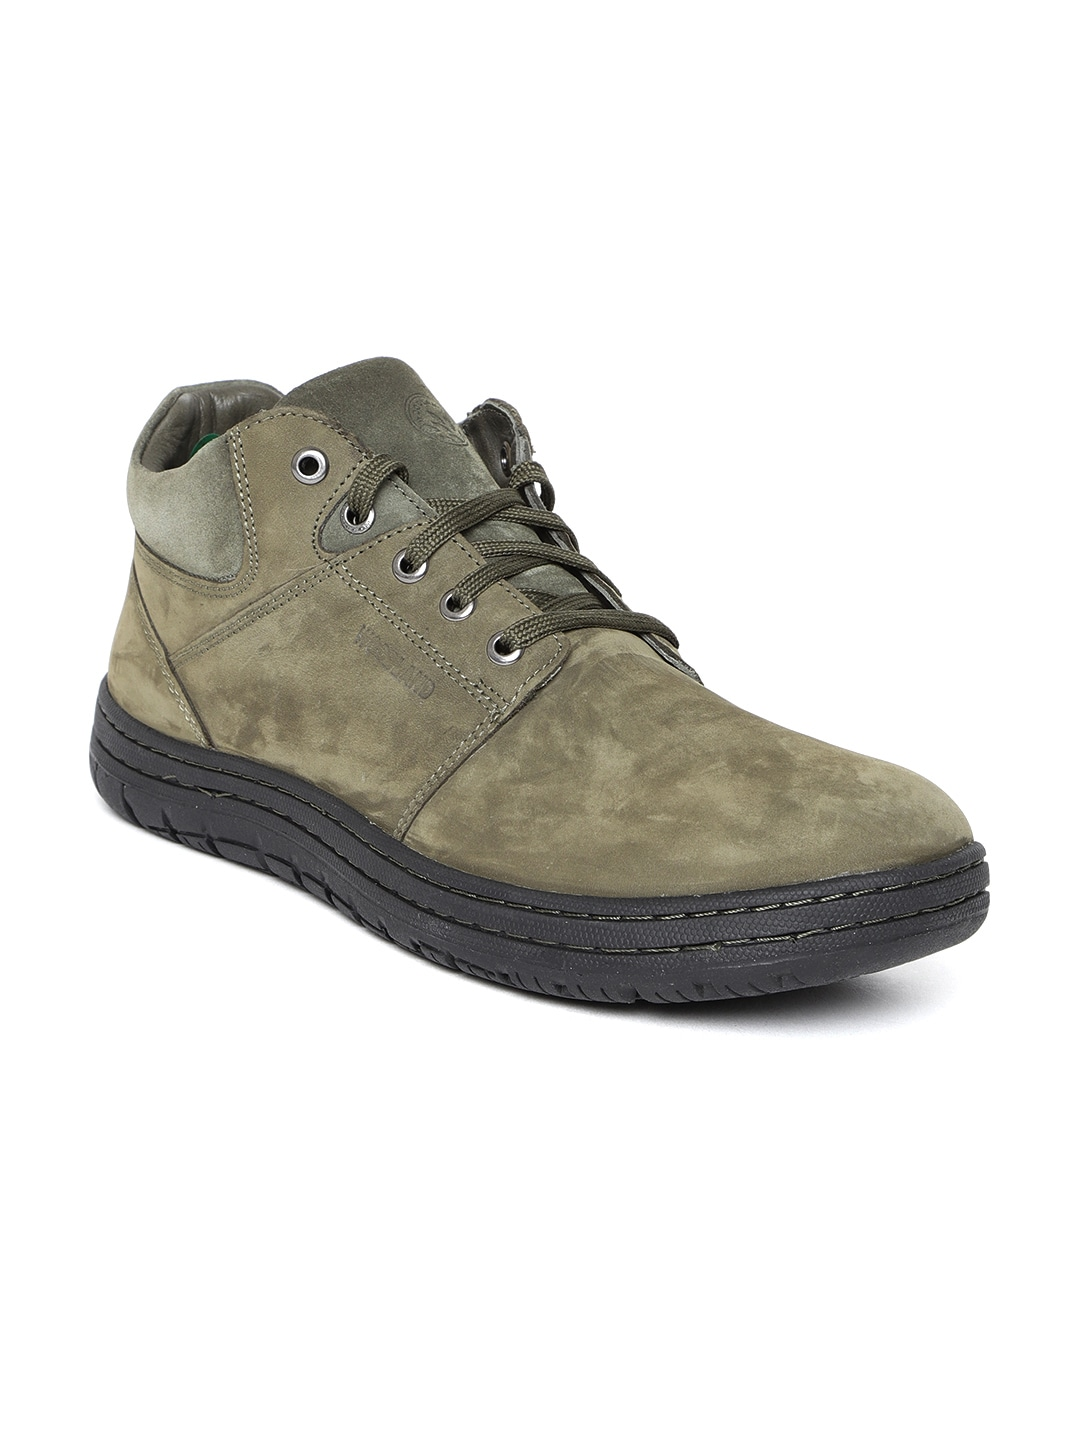 0a2fa0ce796d3 Casual Shoes For Men - Buy Casual   Flat Shoes For Men